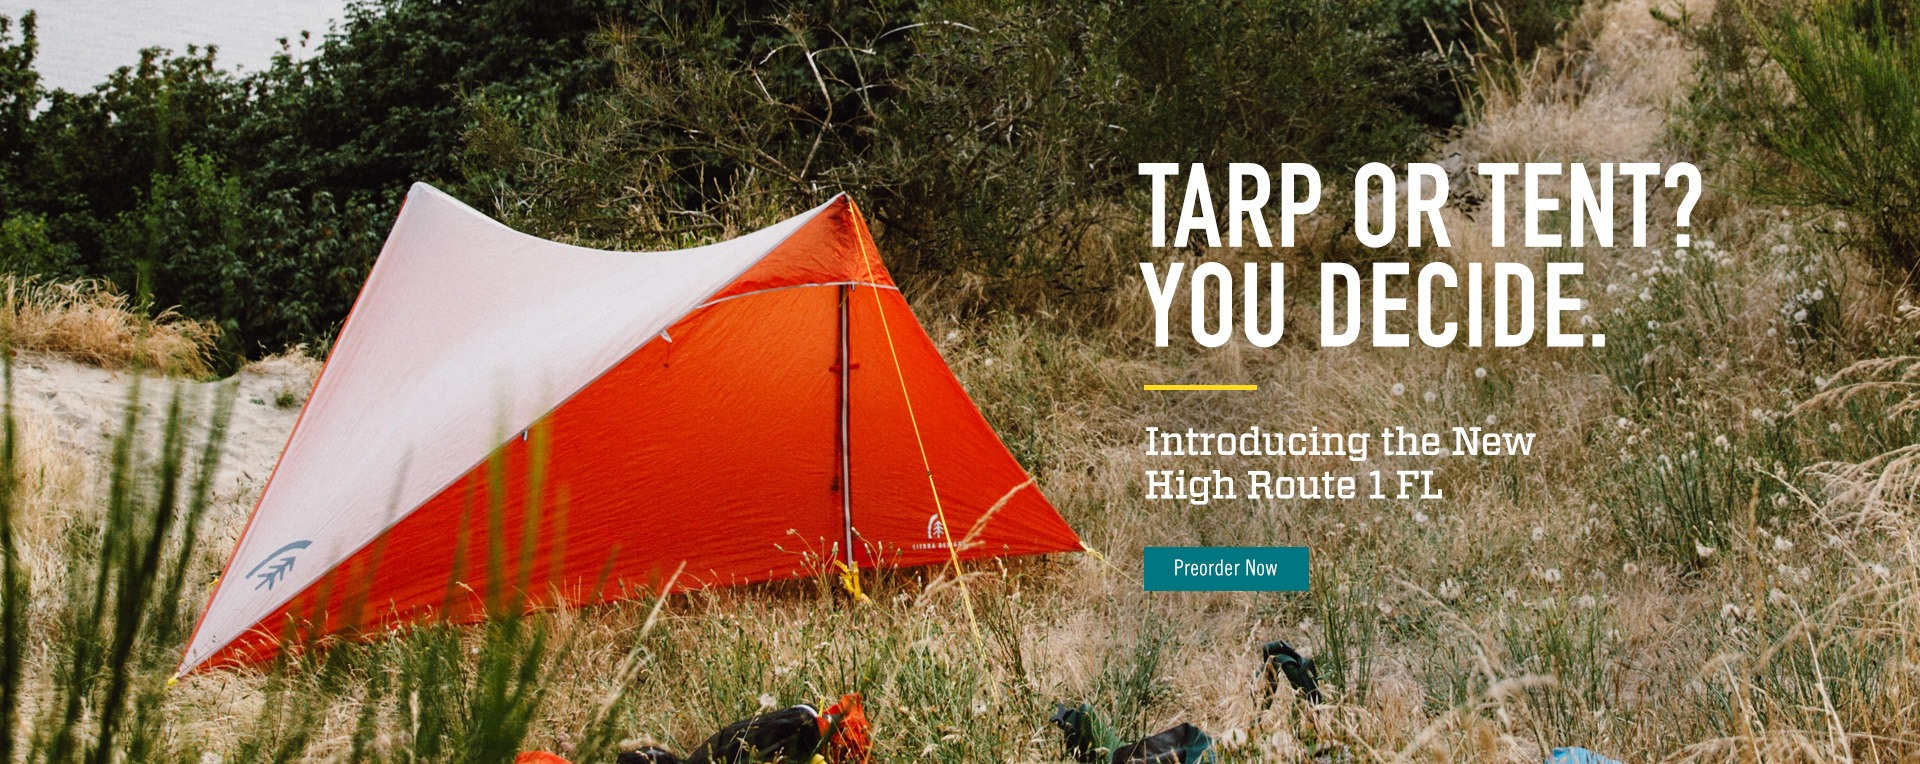 Introducing the New High Route 1 FL Tent